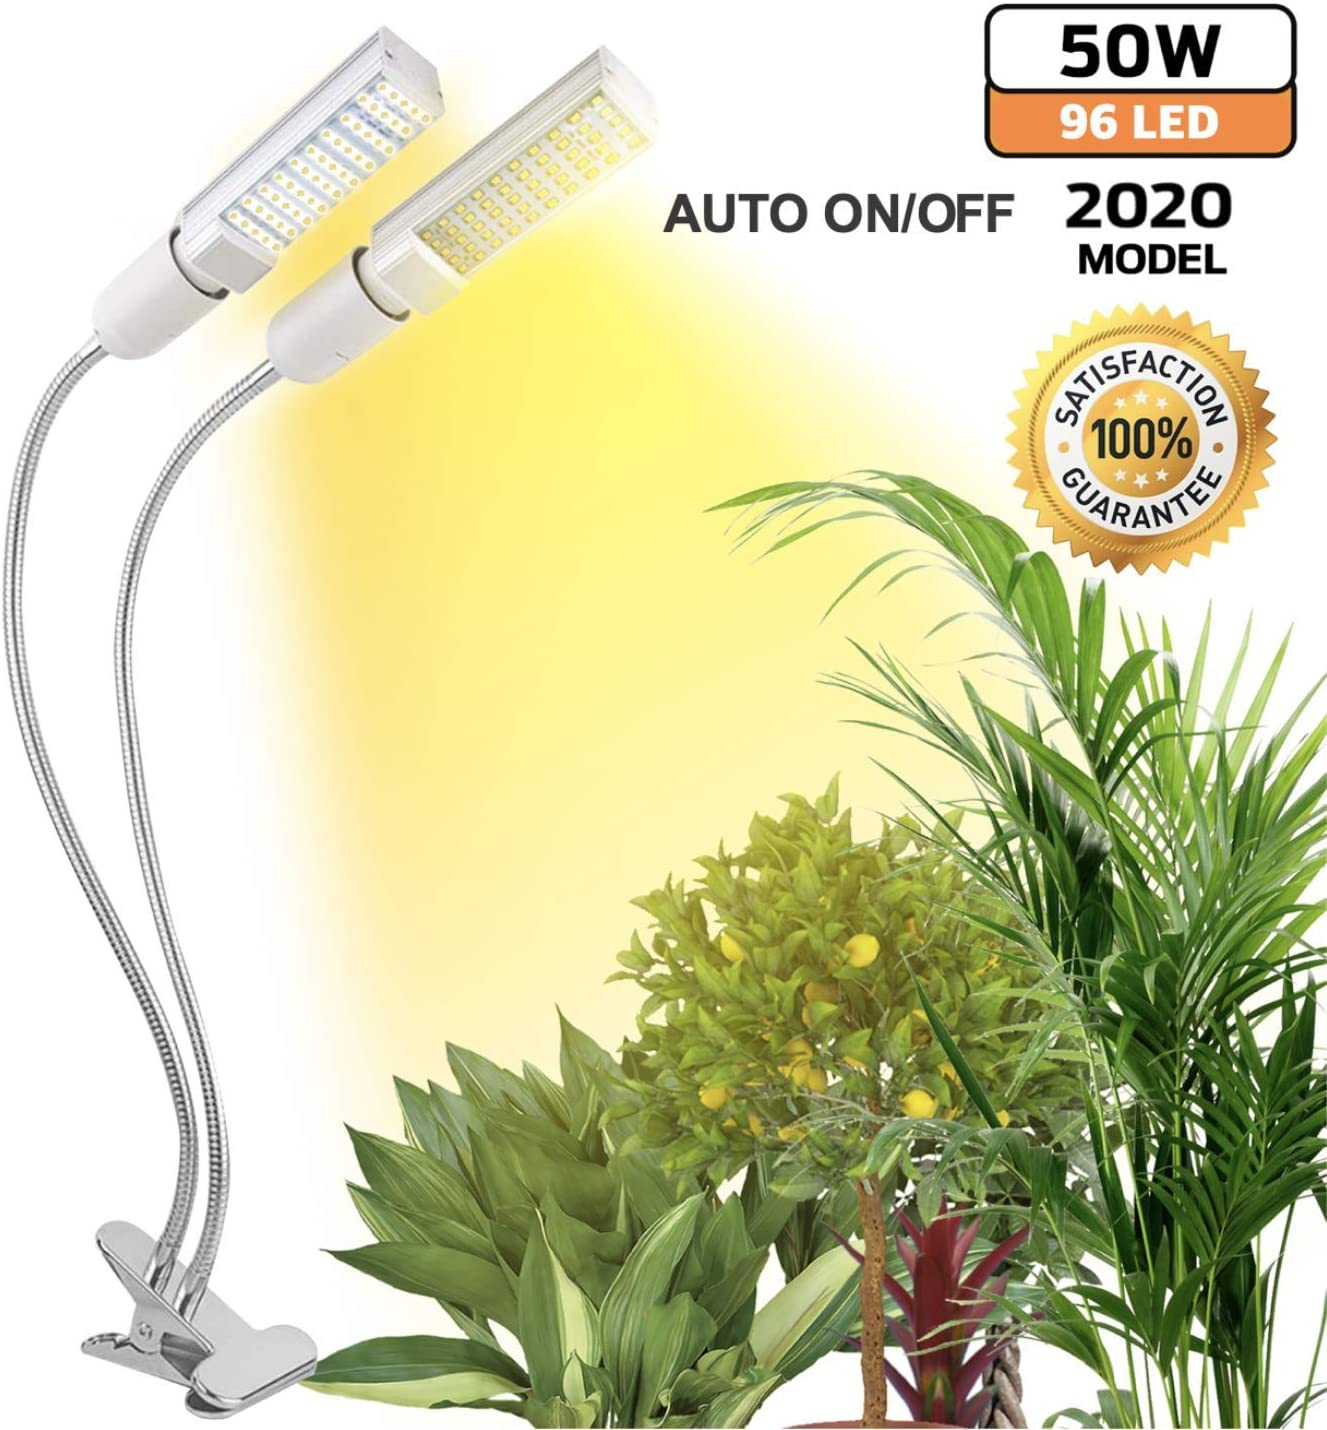 50W Plant Grow Light for Indoor Plants Sunlike Bright Full Spectrum LED Grow Lamp, Dual Head Adjustable Replaceable Bulbs Succulent Plant Growth Lamp Flowering with Dimmer Auto Timer